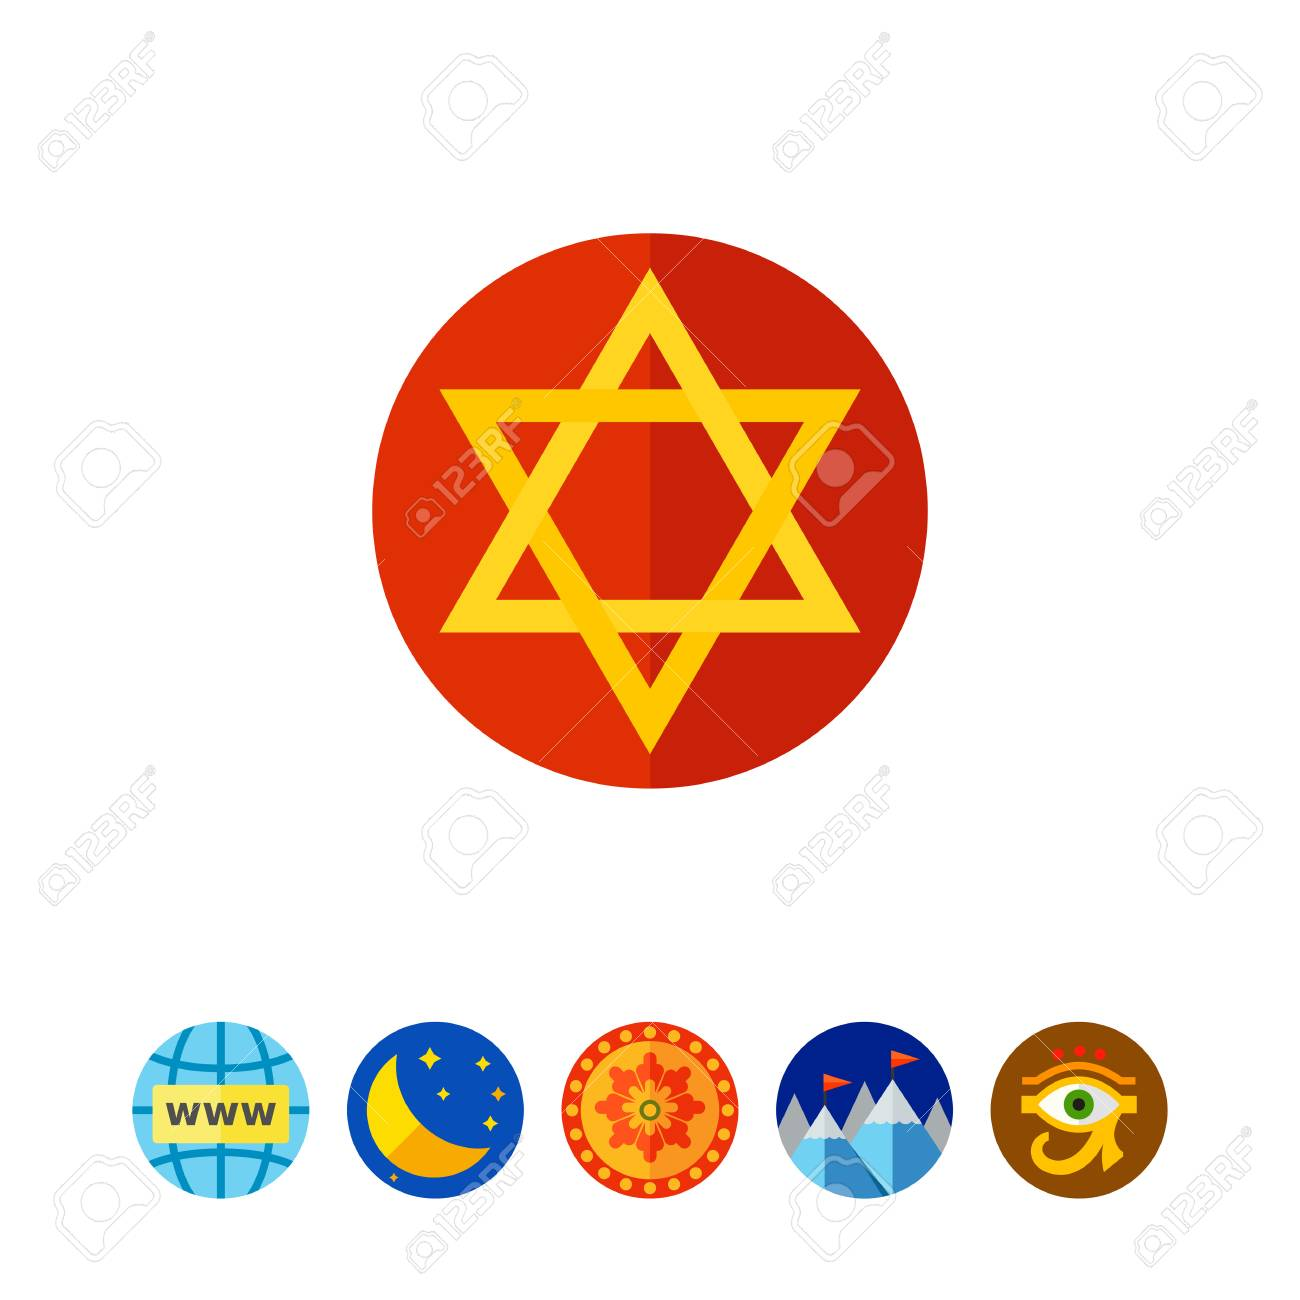 Symbol With Star In Circle Image Collections Meaning Of This Symbol